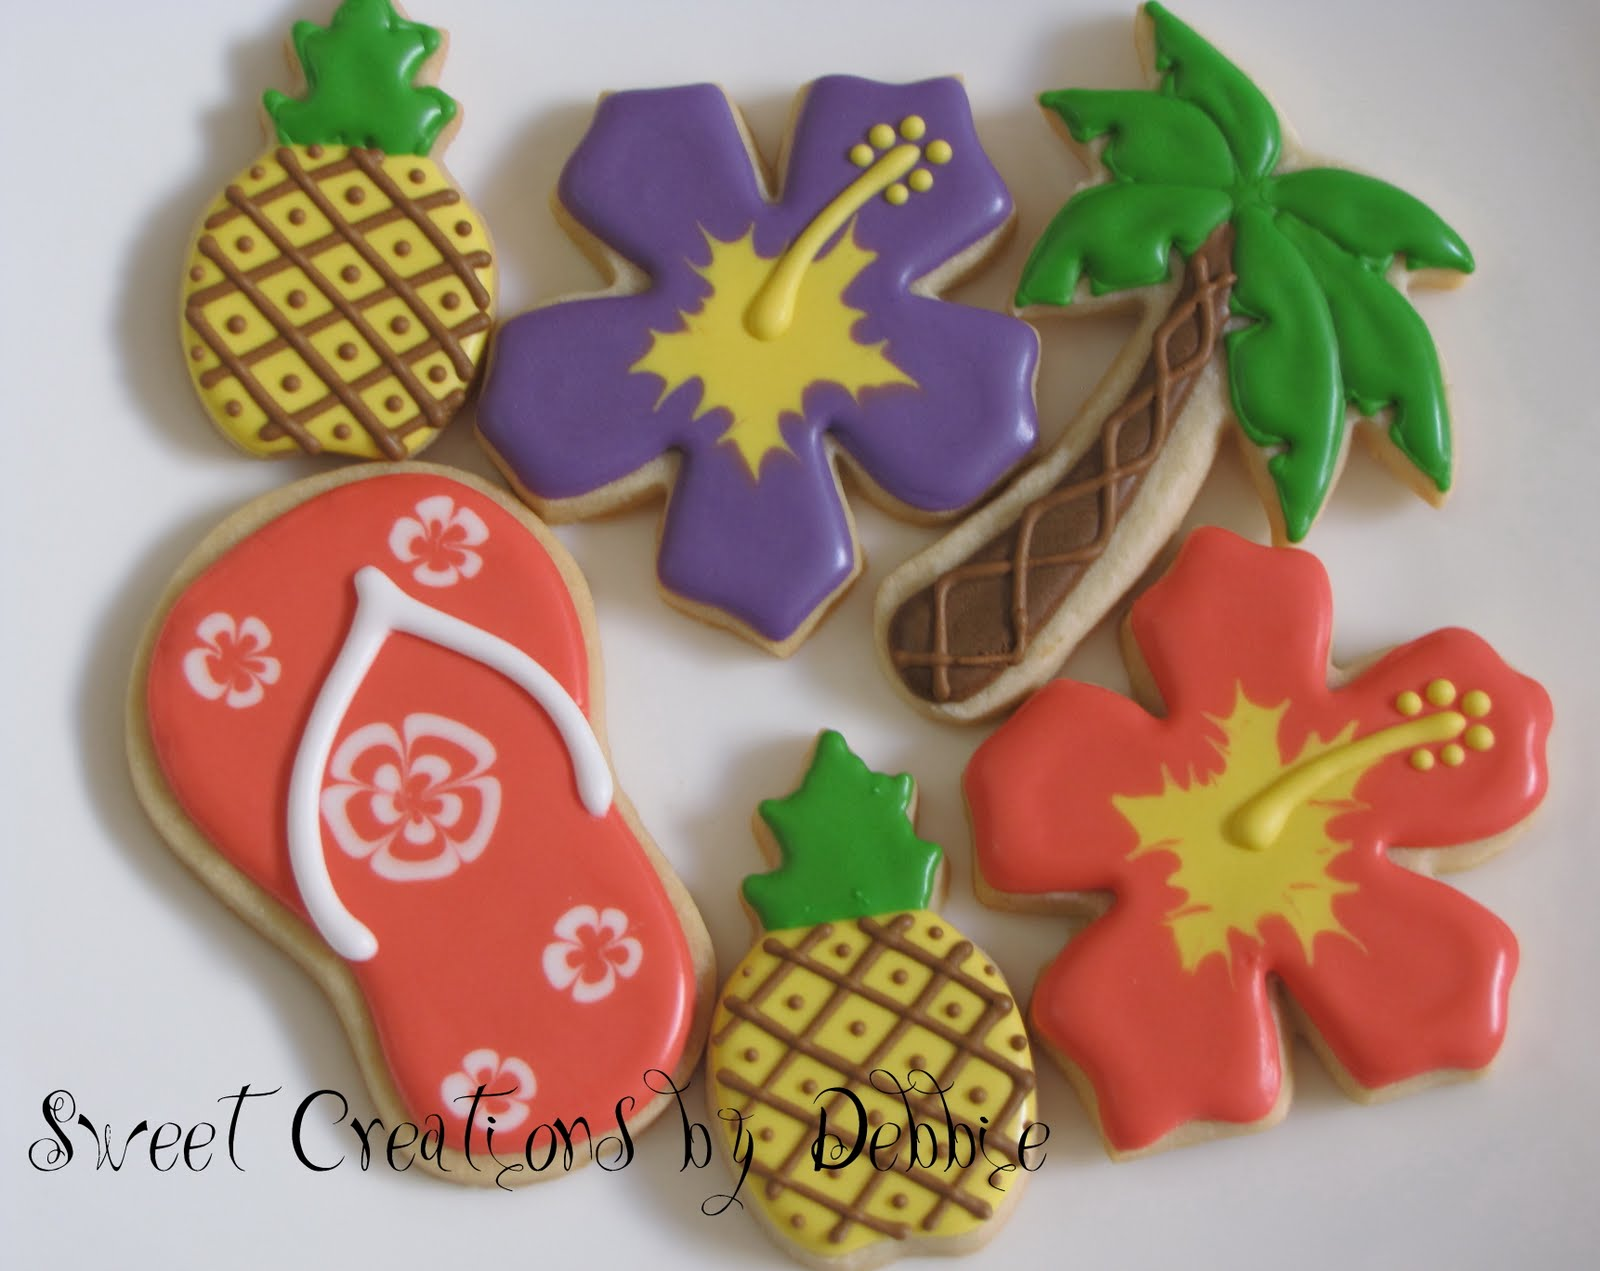 Sea Glass Candy Cookies - 1 Fine Cookie